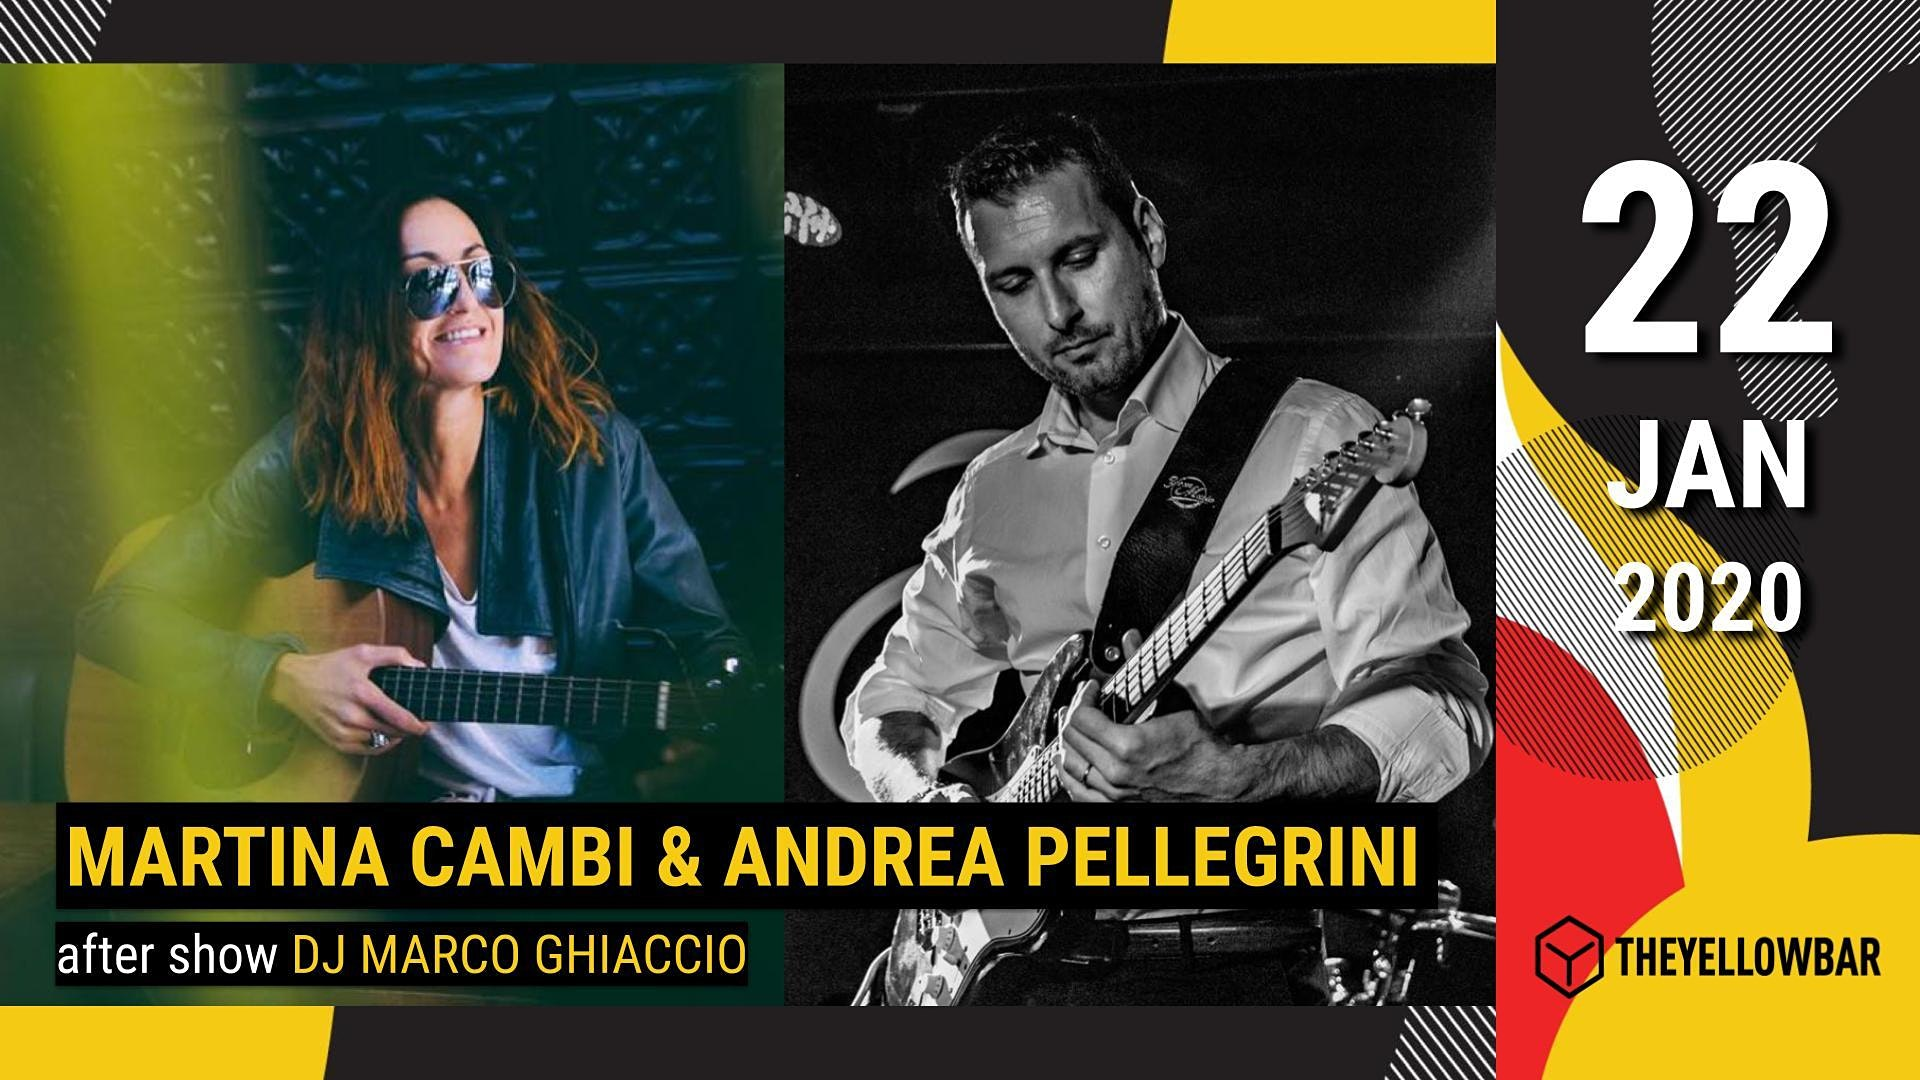 Martina Cambi & Andrea Pellegrini (Duo) - The Yellow Bar